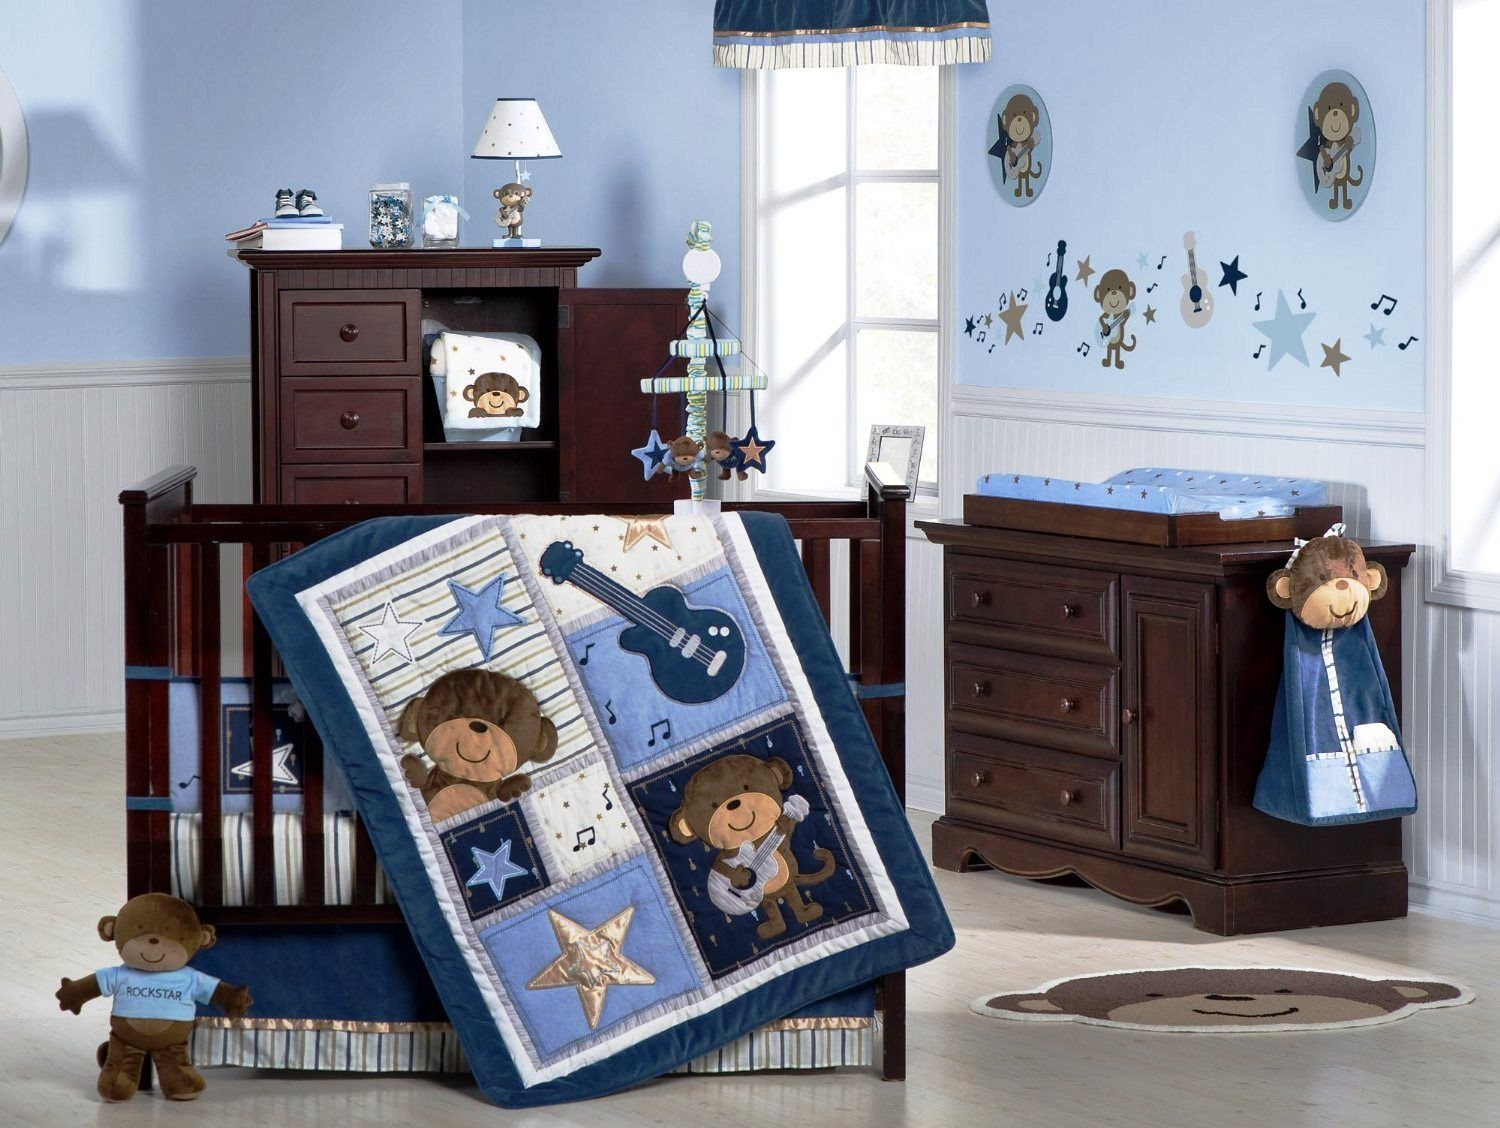 1000 images about nursery ideas on pinterest boy nursery themes hunting baby and baby boy nursery themes baby boy rooms